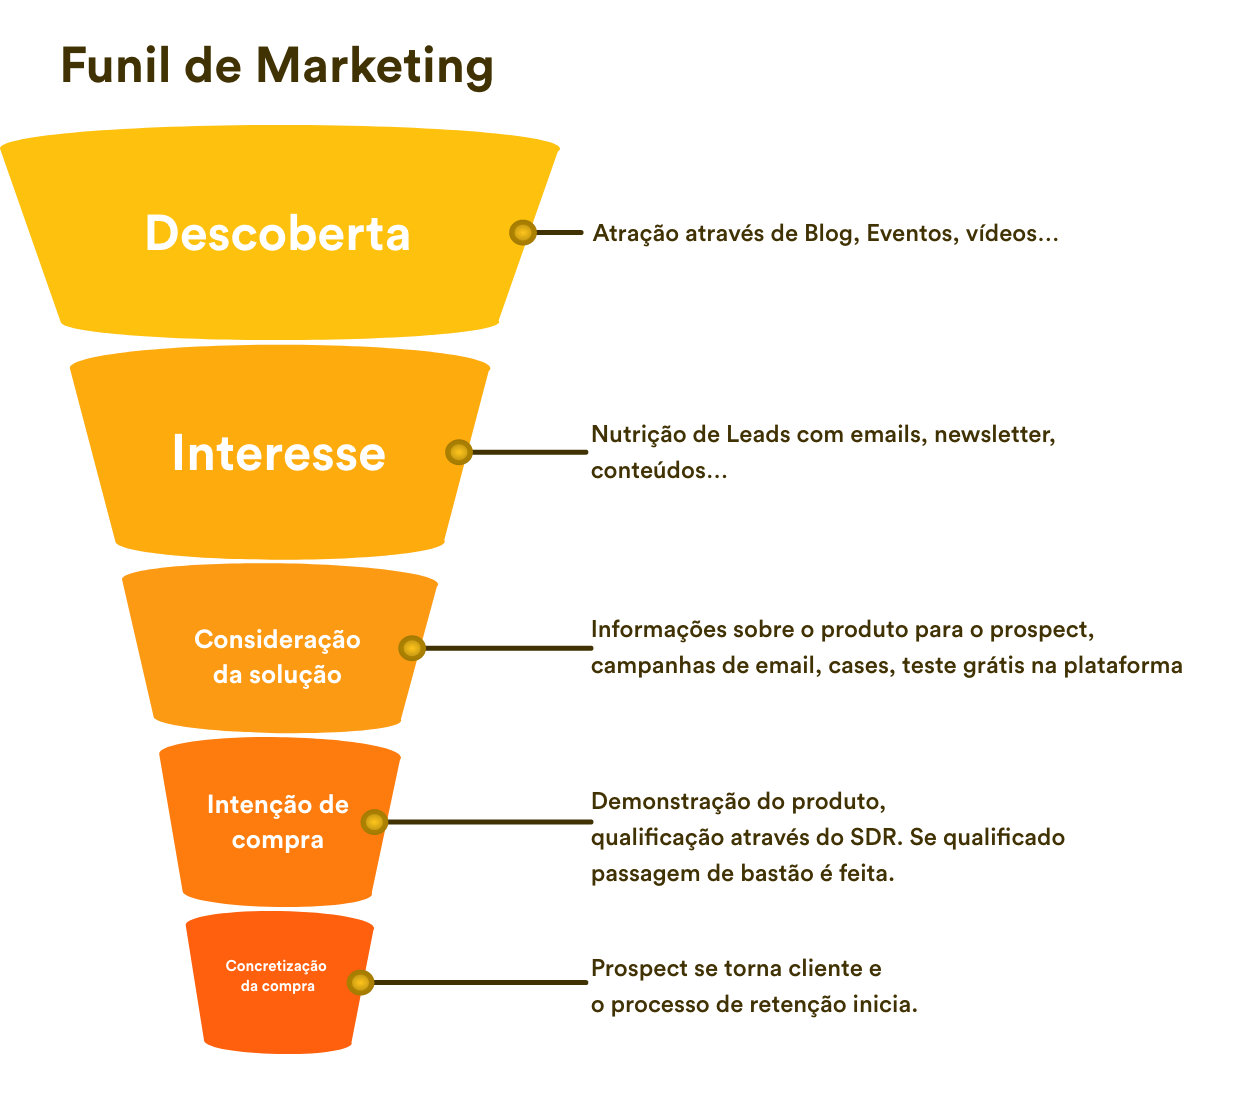 O-que-e-crm-Funil-de-marketing-nectar-nectarcrm-crm-de-vendas--1-